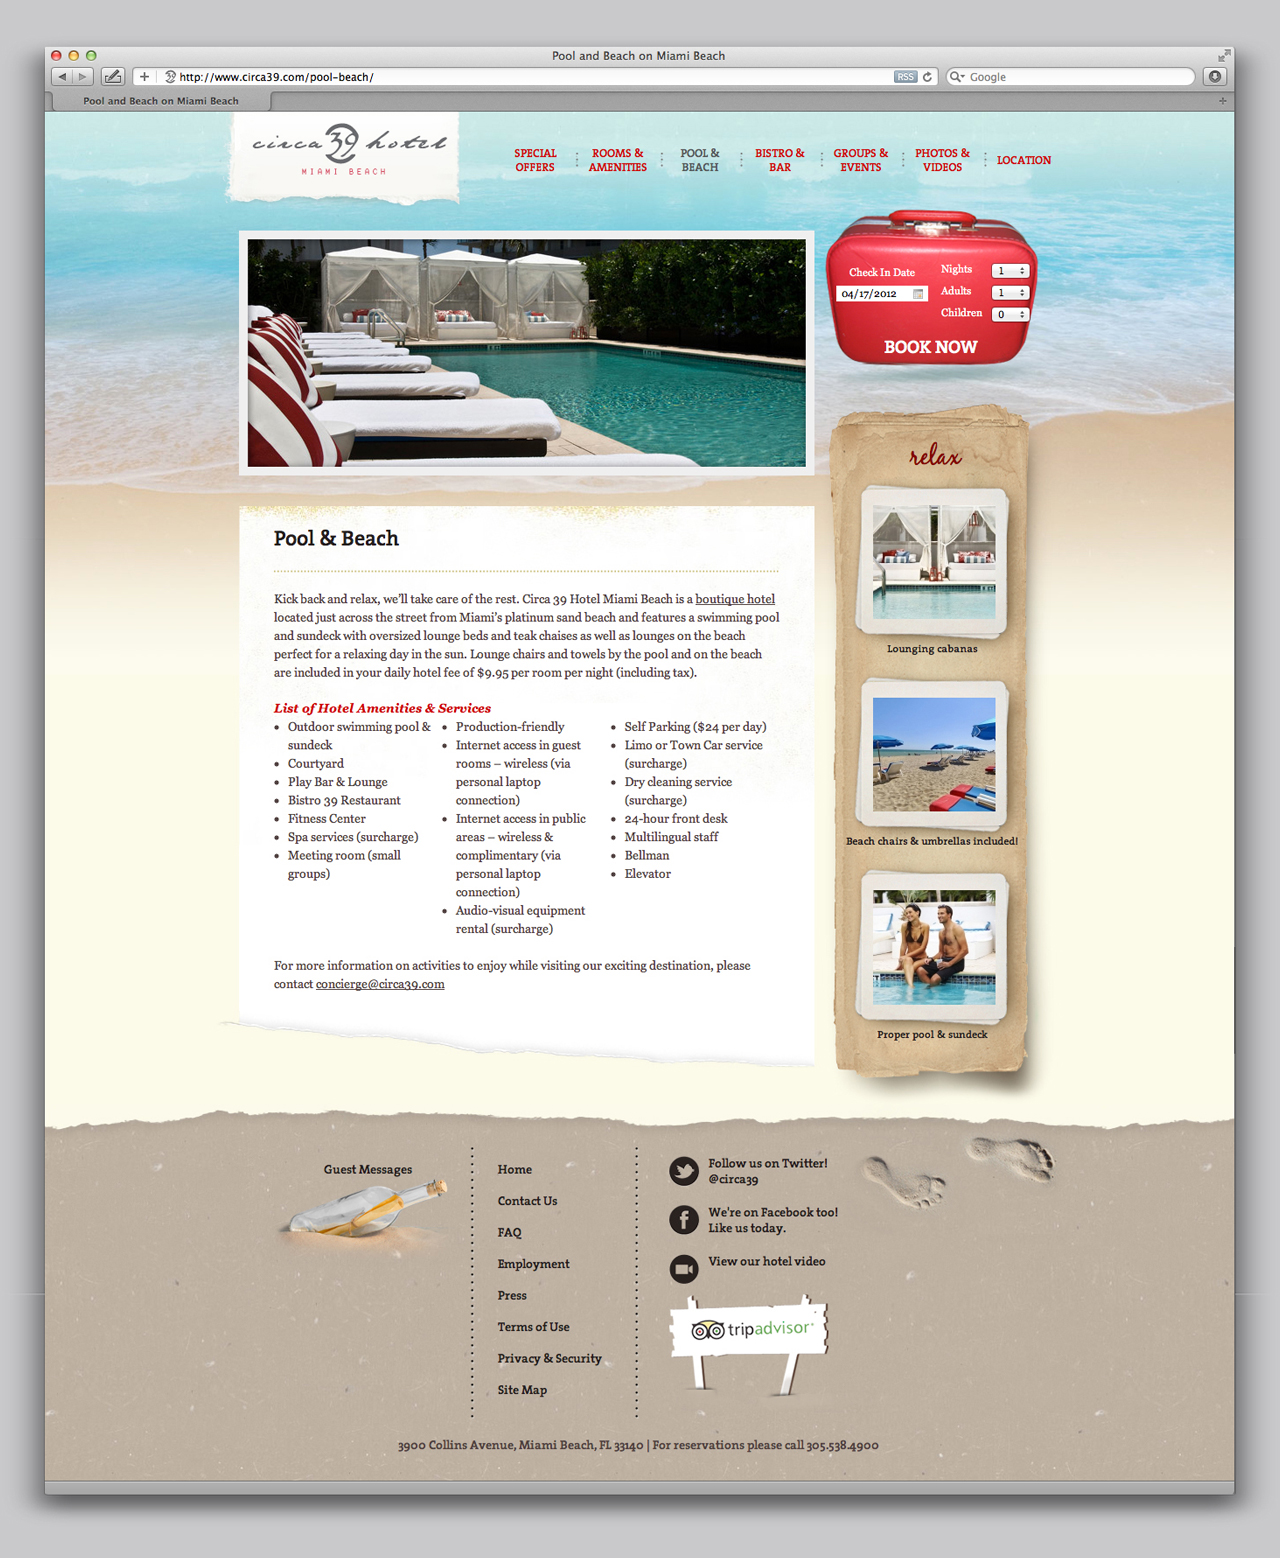 circa-39-hotel-website-design-by-camilo-rojas-2_o.jpg